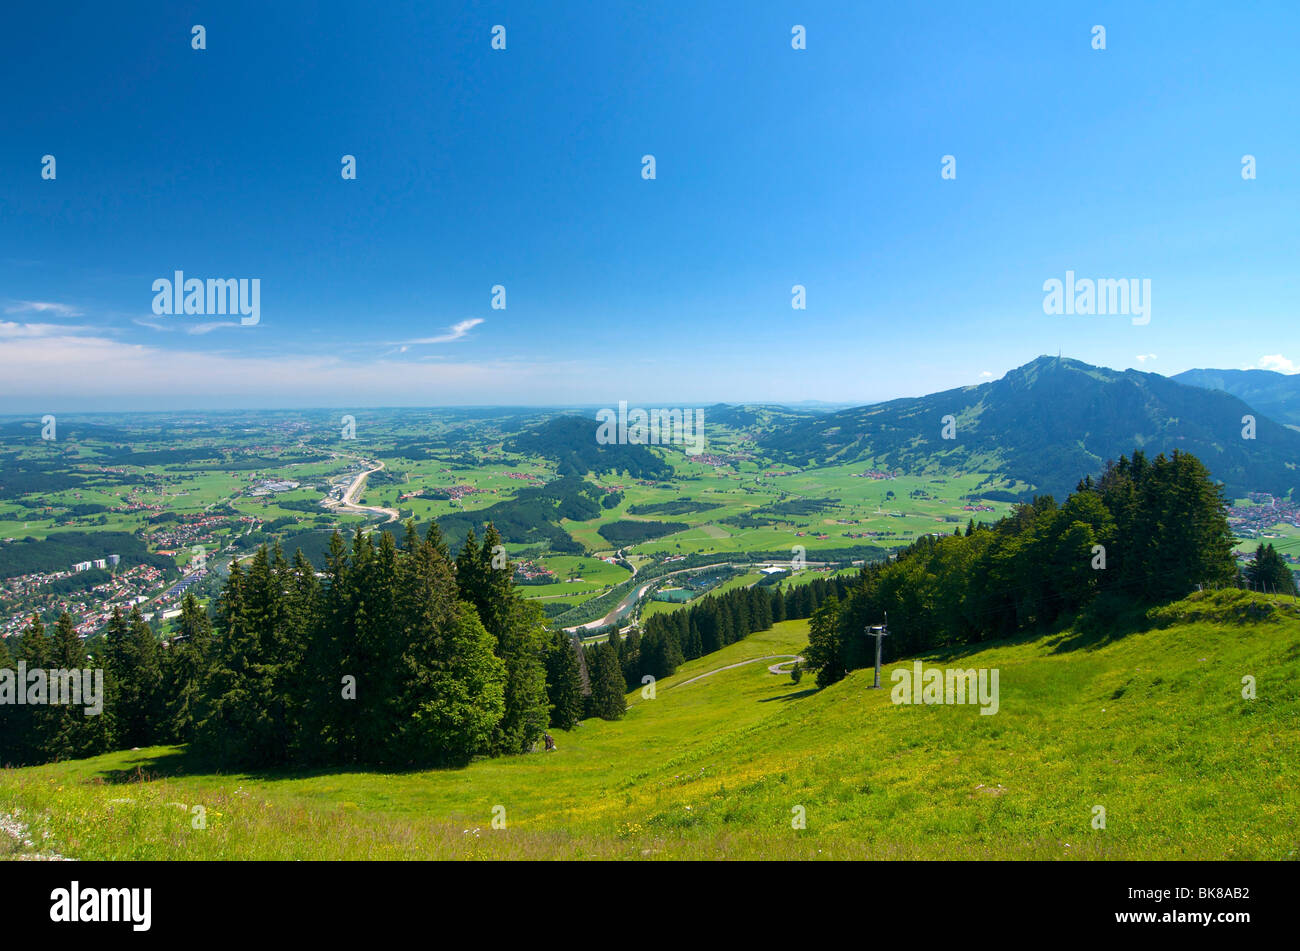 View at midday from Gruenten Mountain, Allgaeu, Bavaria, Germany, Europe Stock Photo